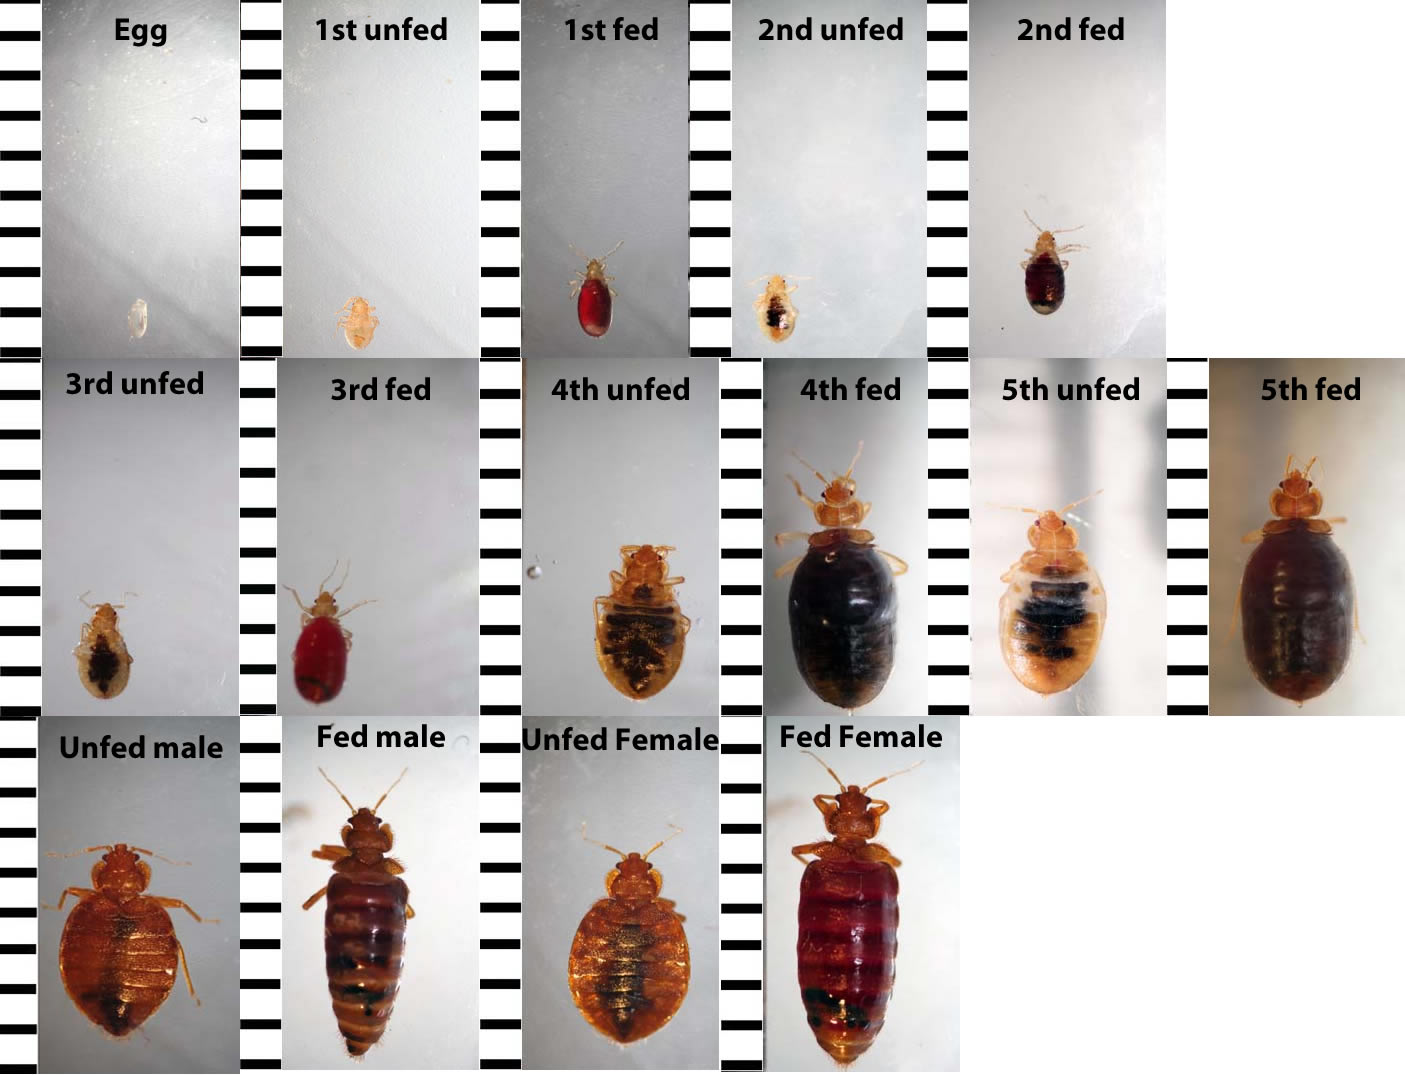 What Do Baby Bed Bugs Look Like to the Human Eye?